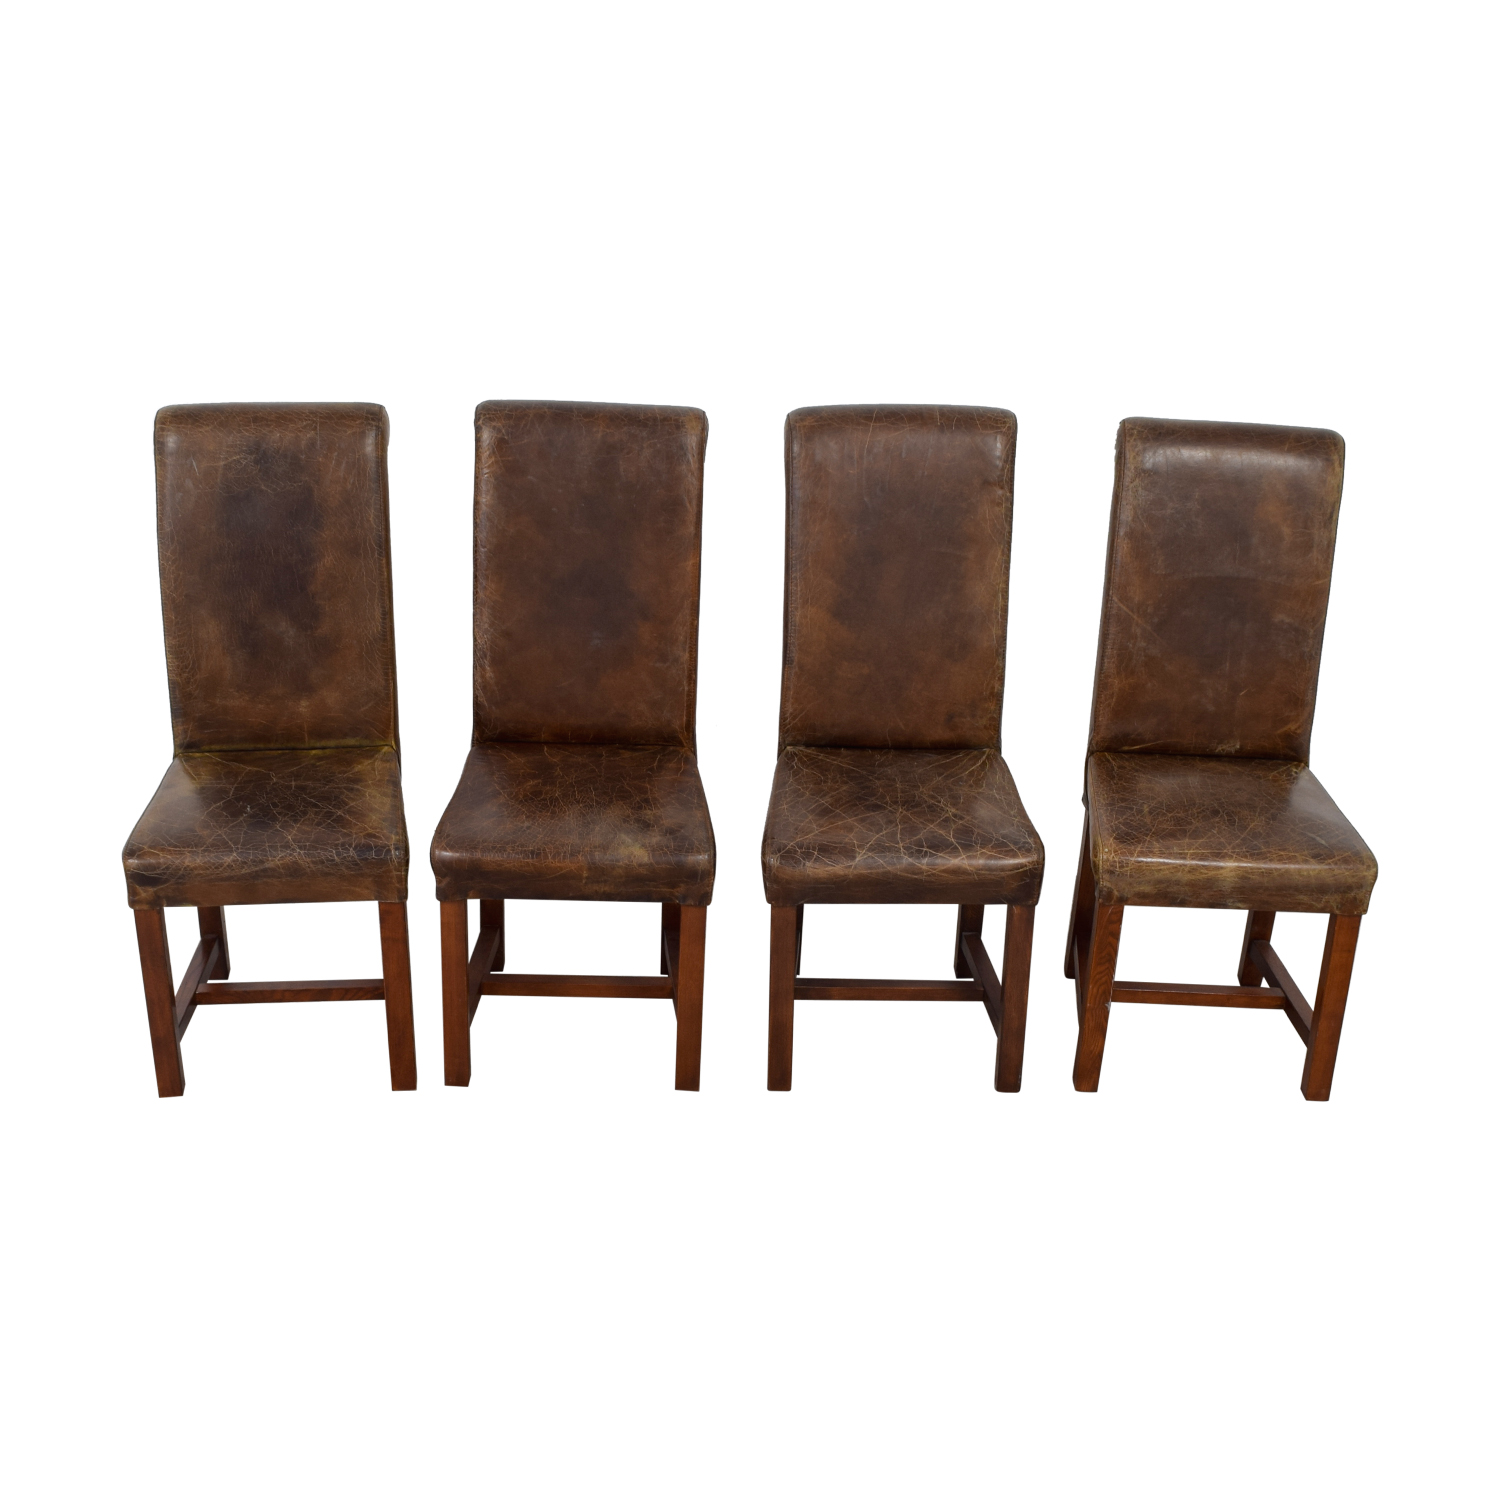 Faulkner Faulkner Distressed Brown Leather Chairs discount